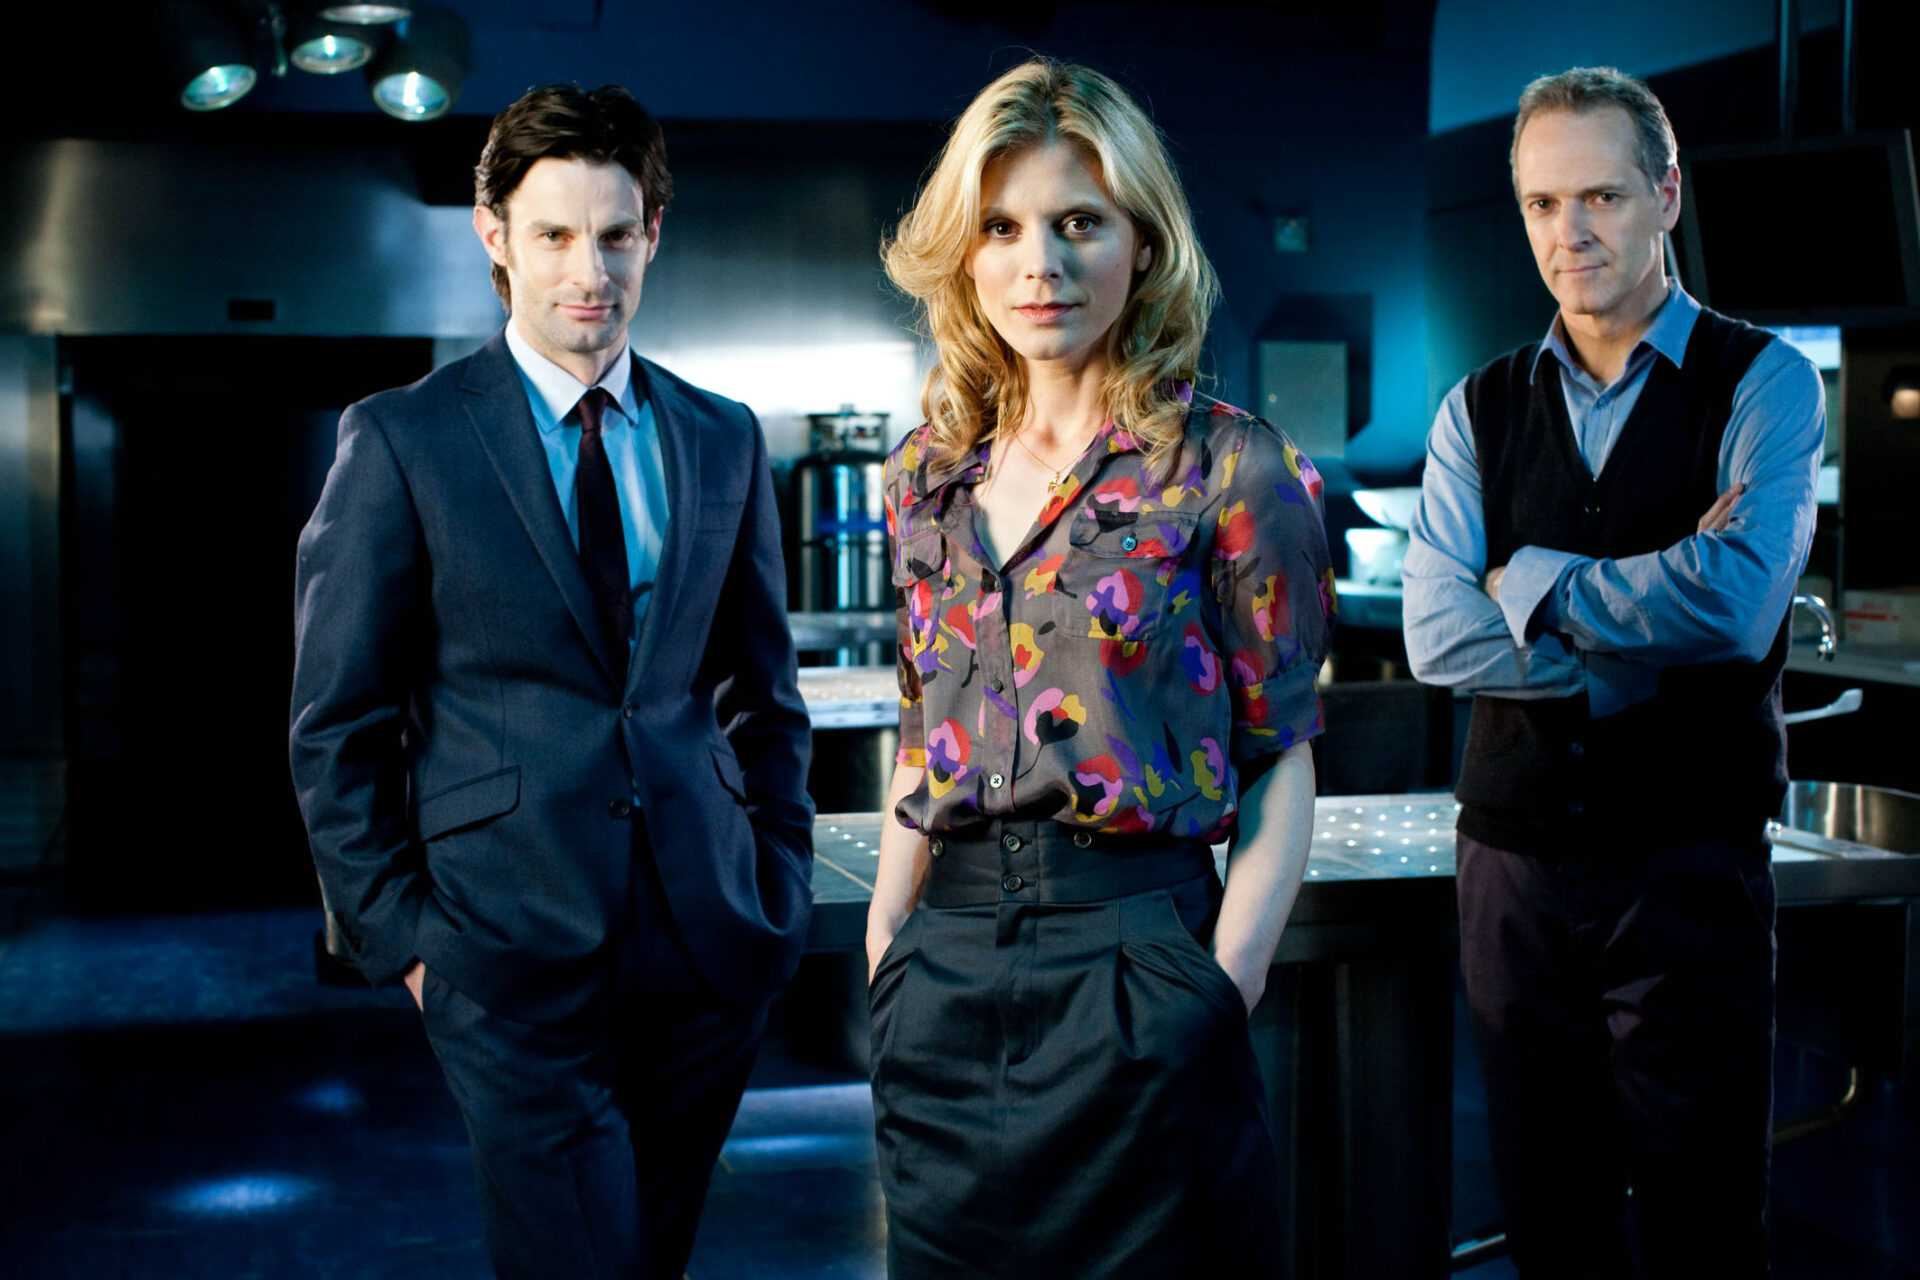 Silent Witness: la decima stagione in prima tv su Giallo | Digitale terrestre: Dtti.it